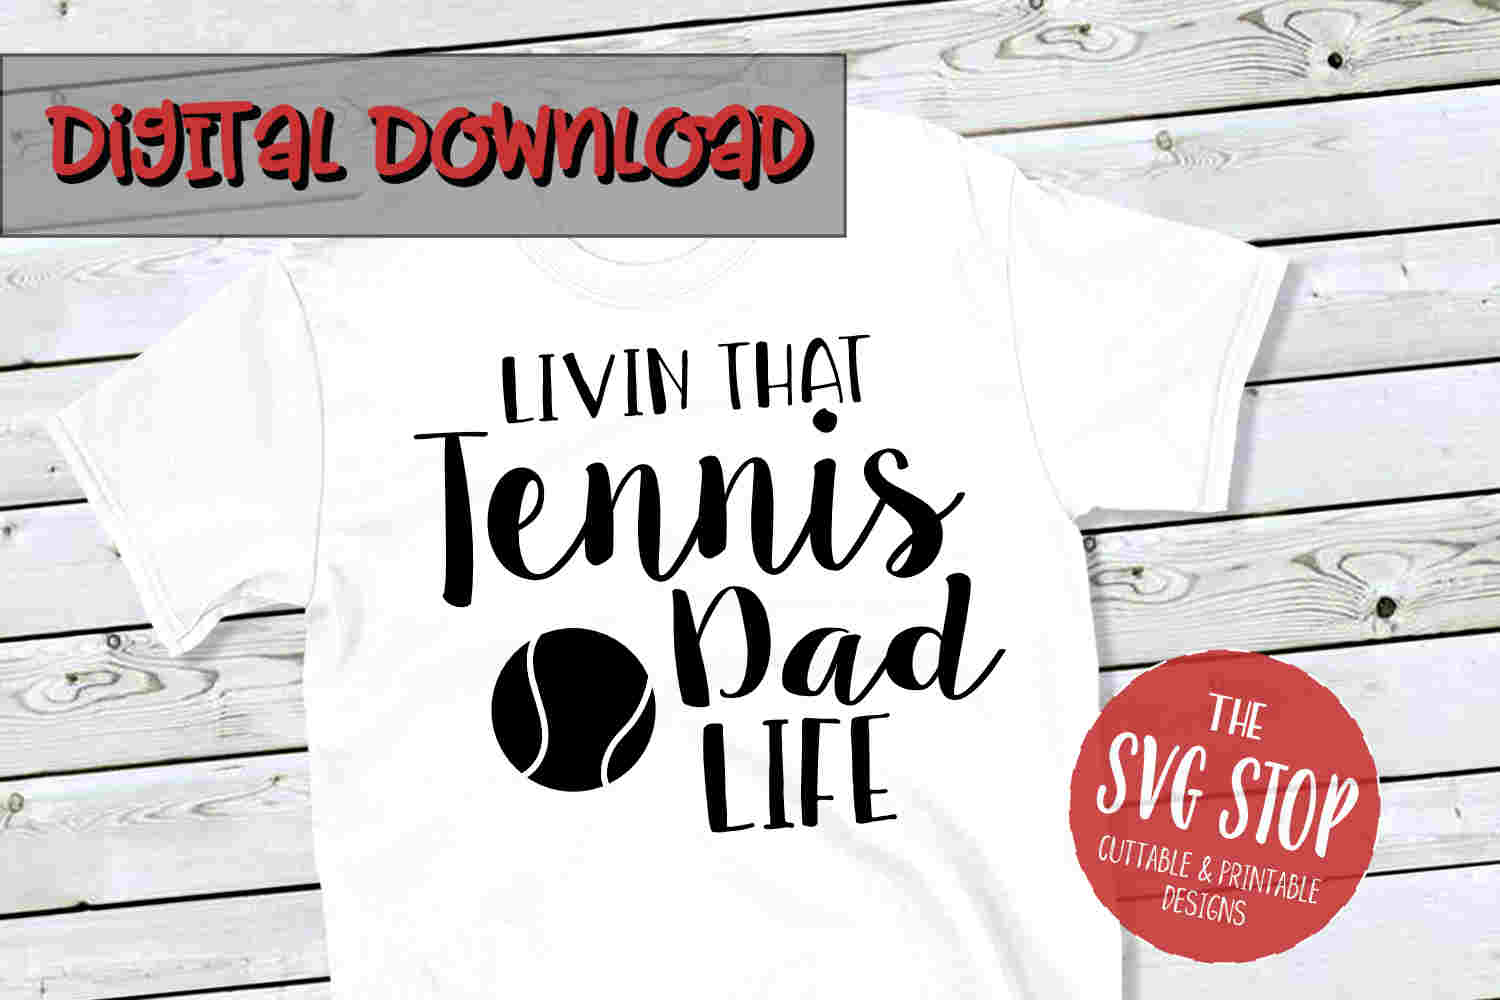 Tennis Dad Life -SVG, PNG, DXF example image 1